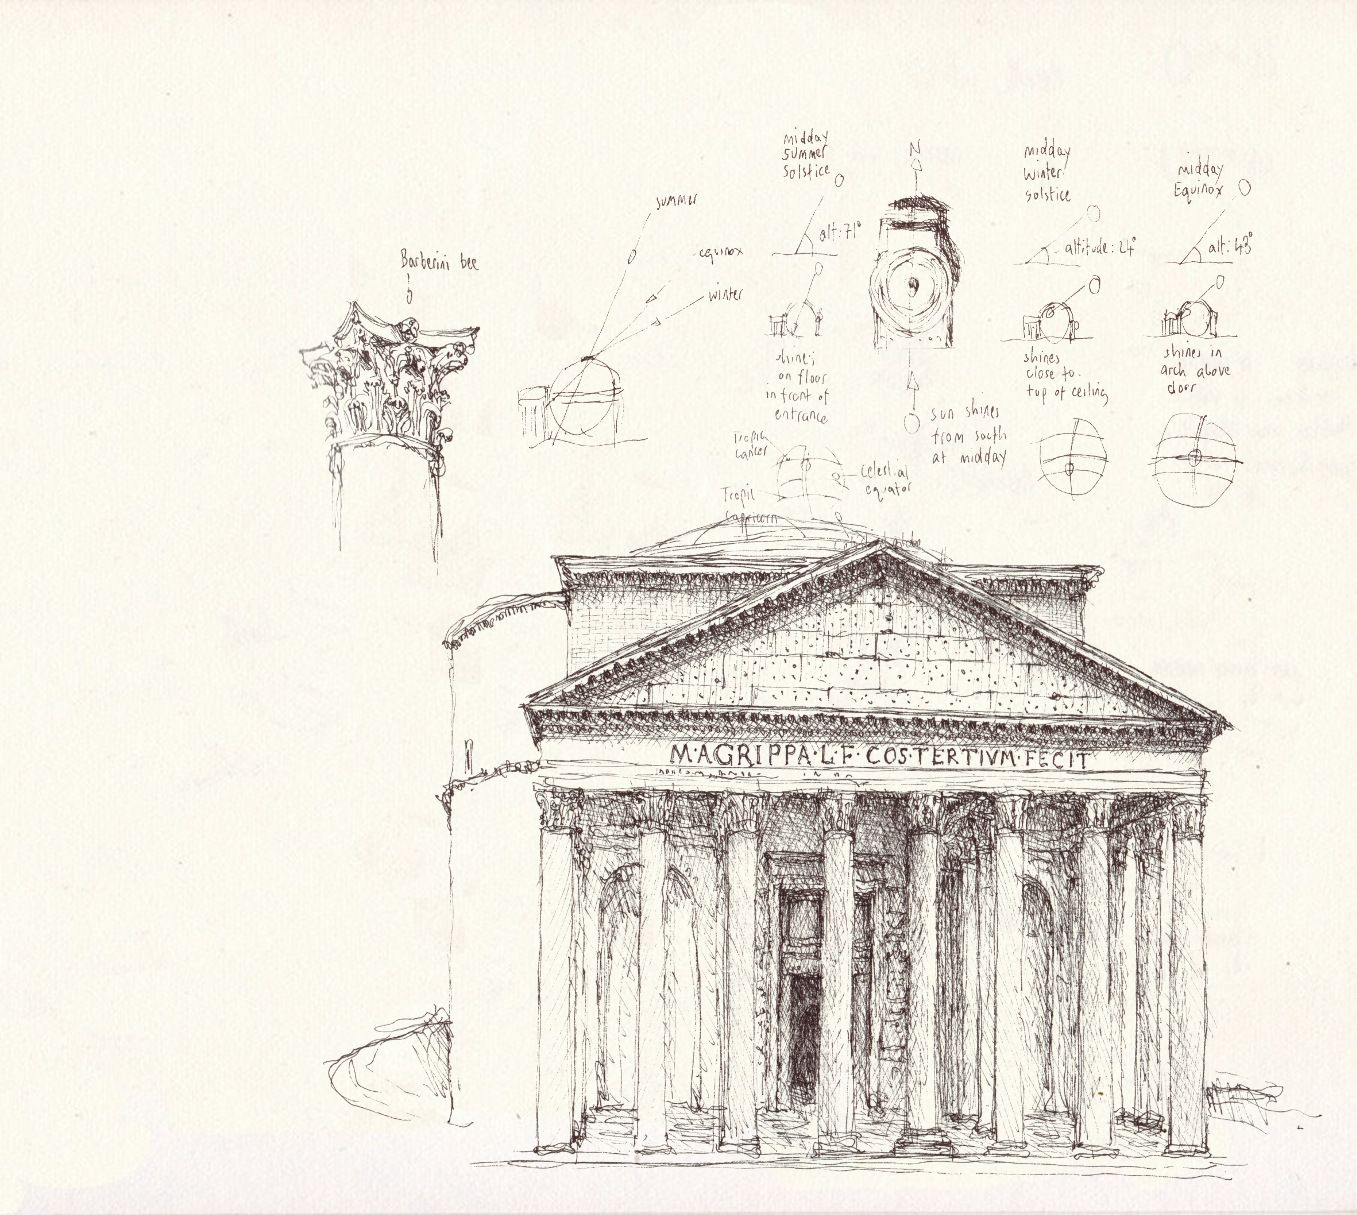 One of my favorite buildings in Rome drawn by one of my talented friends in Civita Castellana.